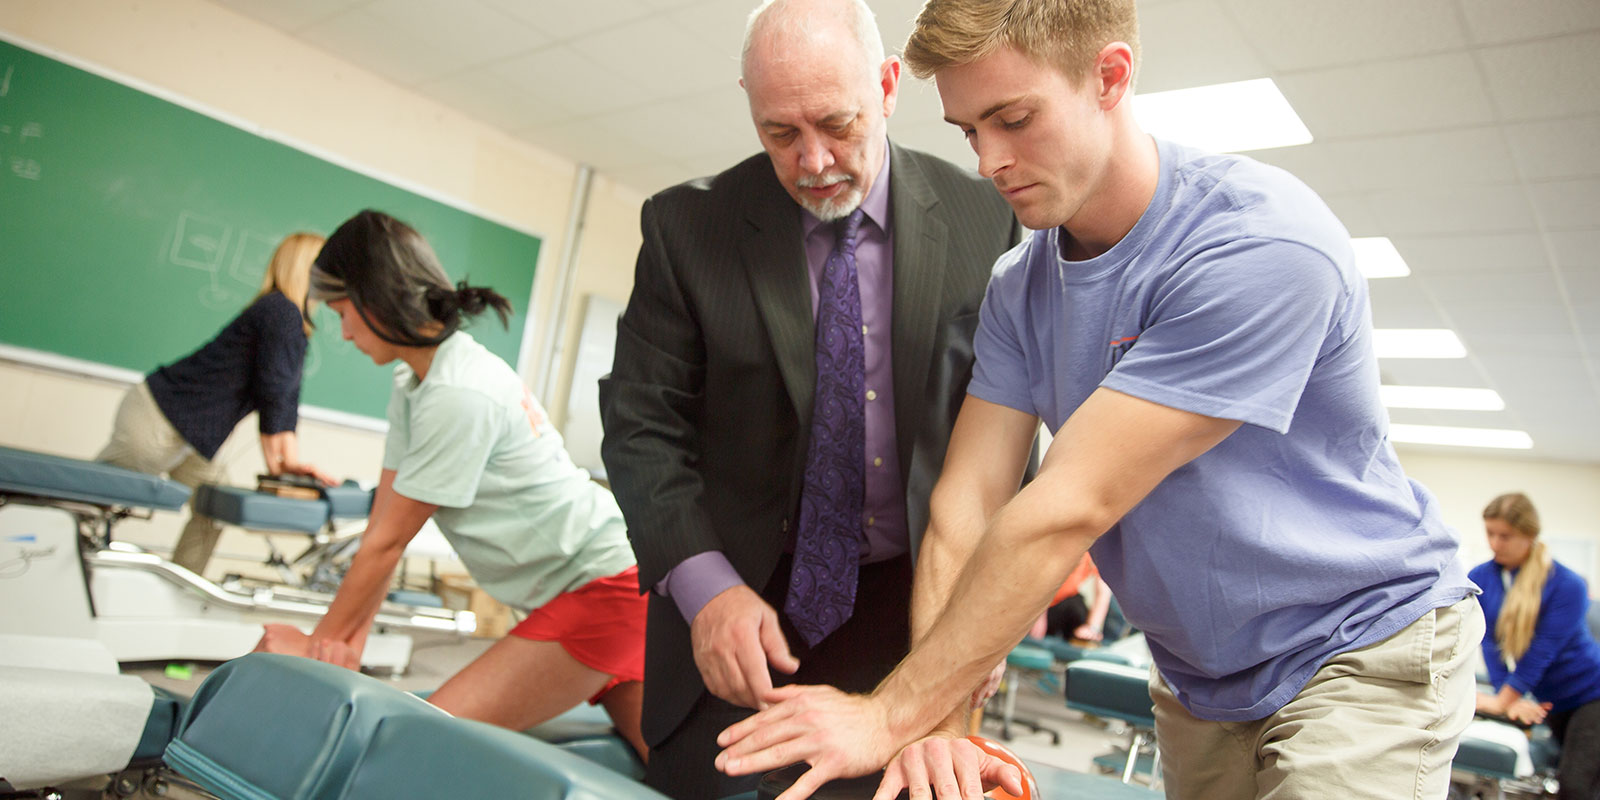 Student working with teacher on chiropractic technique.